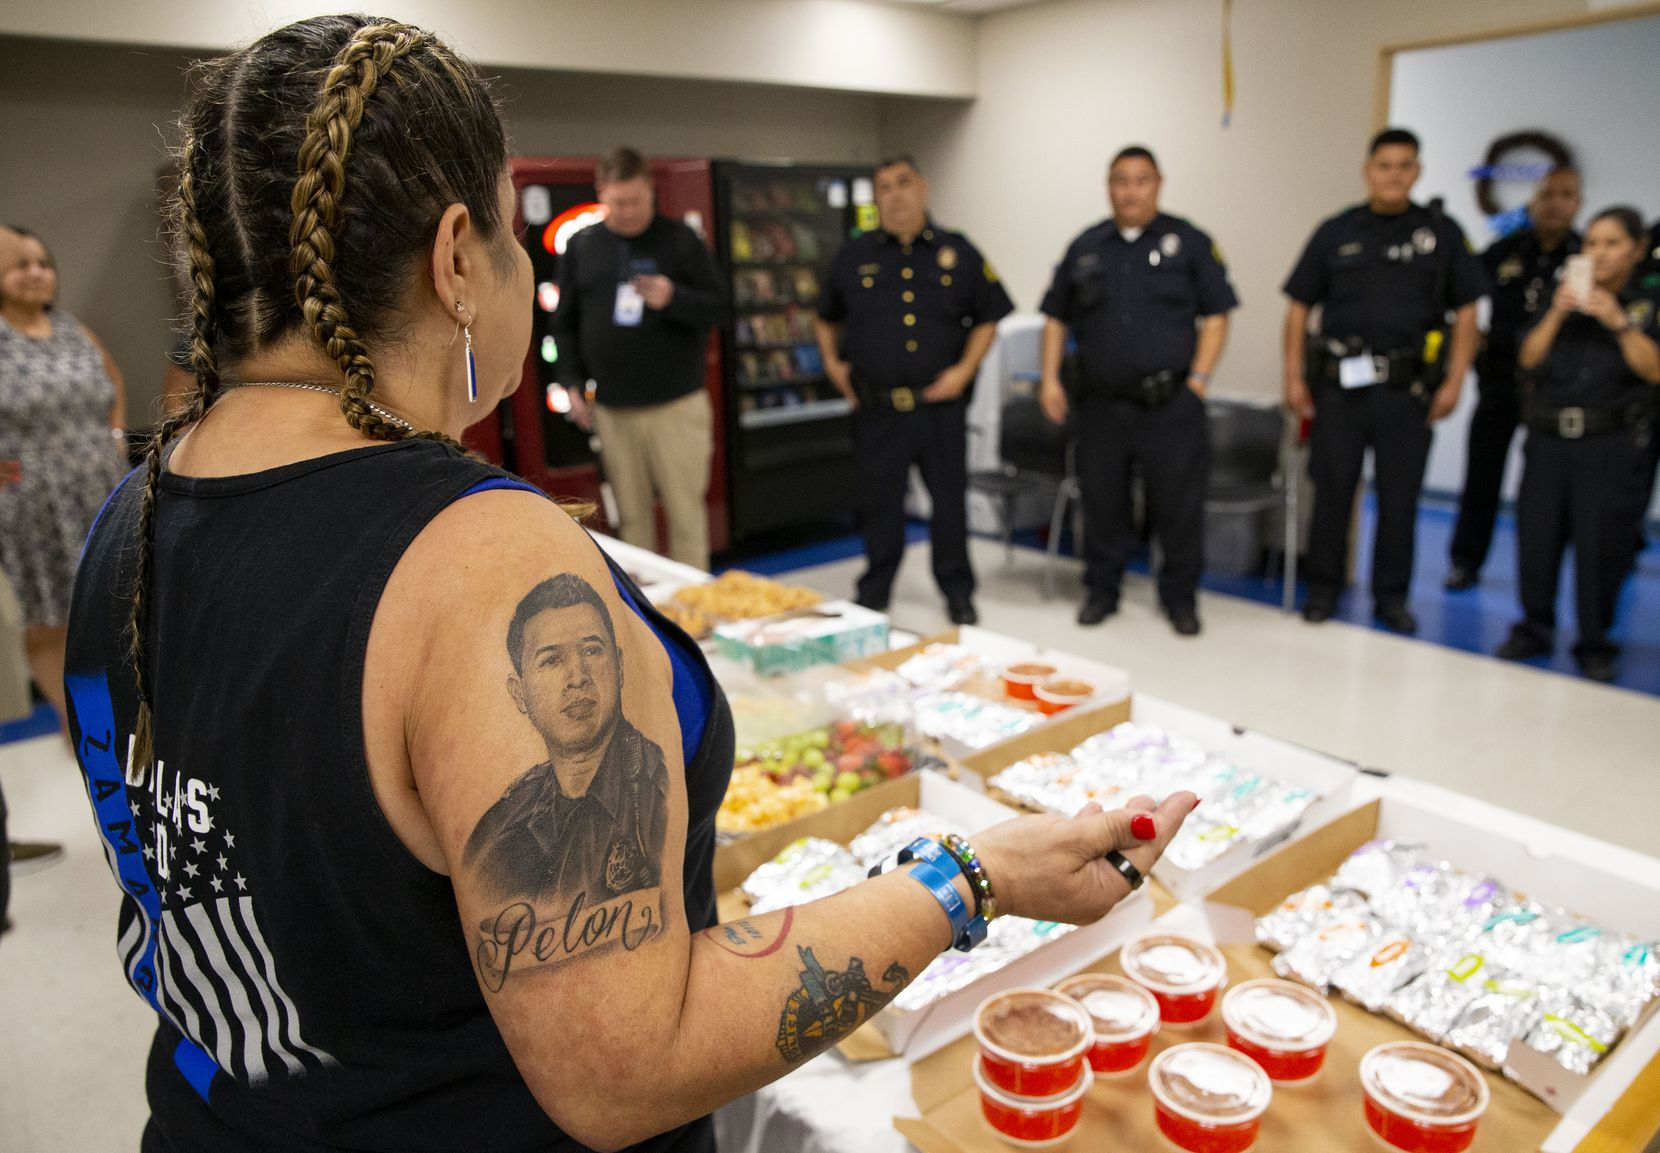 Valerie Zamarripa speaks to the Dallas police Southwest Patrol division before serving them breakfast on Friday, July 2, 2021, in Dallas. Valerie Zamarripa's son, Patrick Zamarripa, was one of the five officers who were killed when a gunman ambushed a peaceful evening of protests in downtown Dallas in 2016. (Juan Figueroa/The Dallas Morning News)